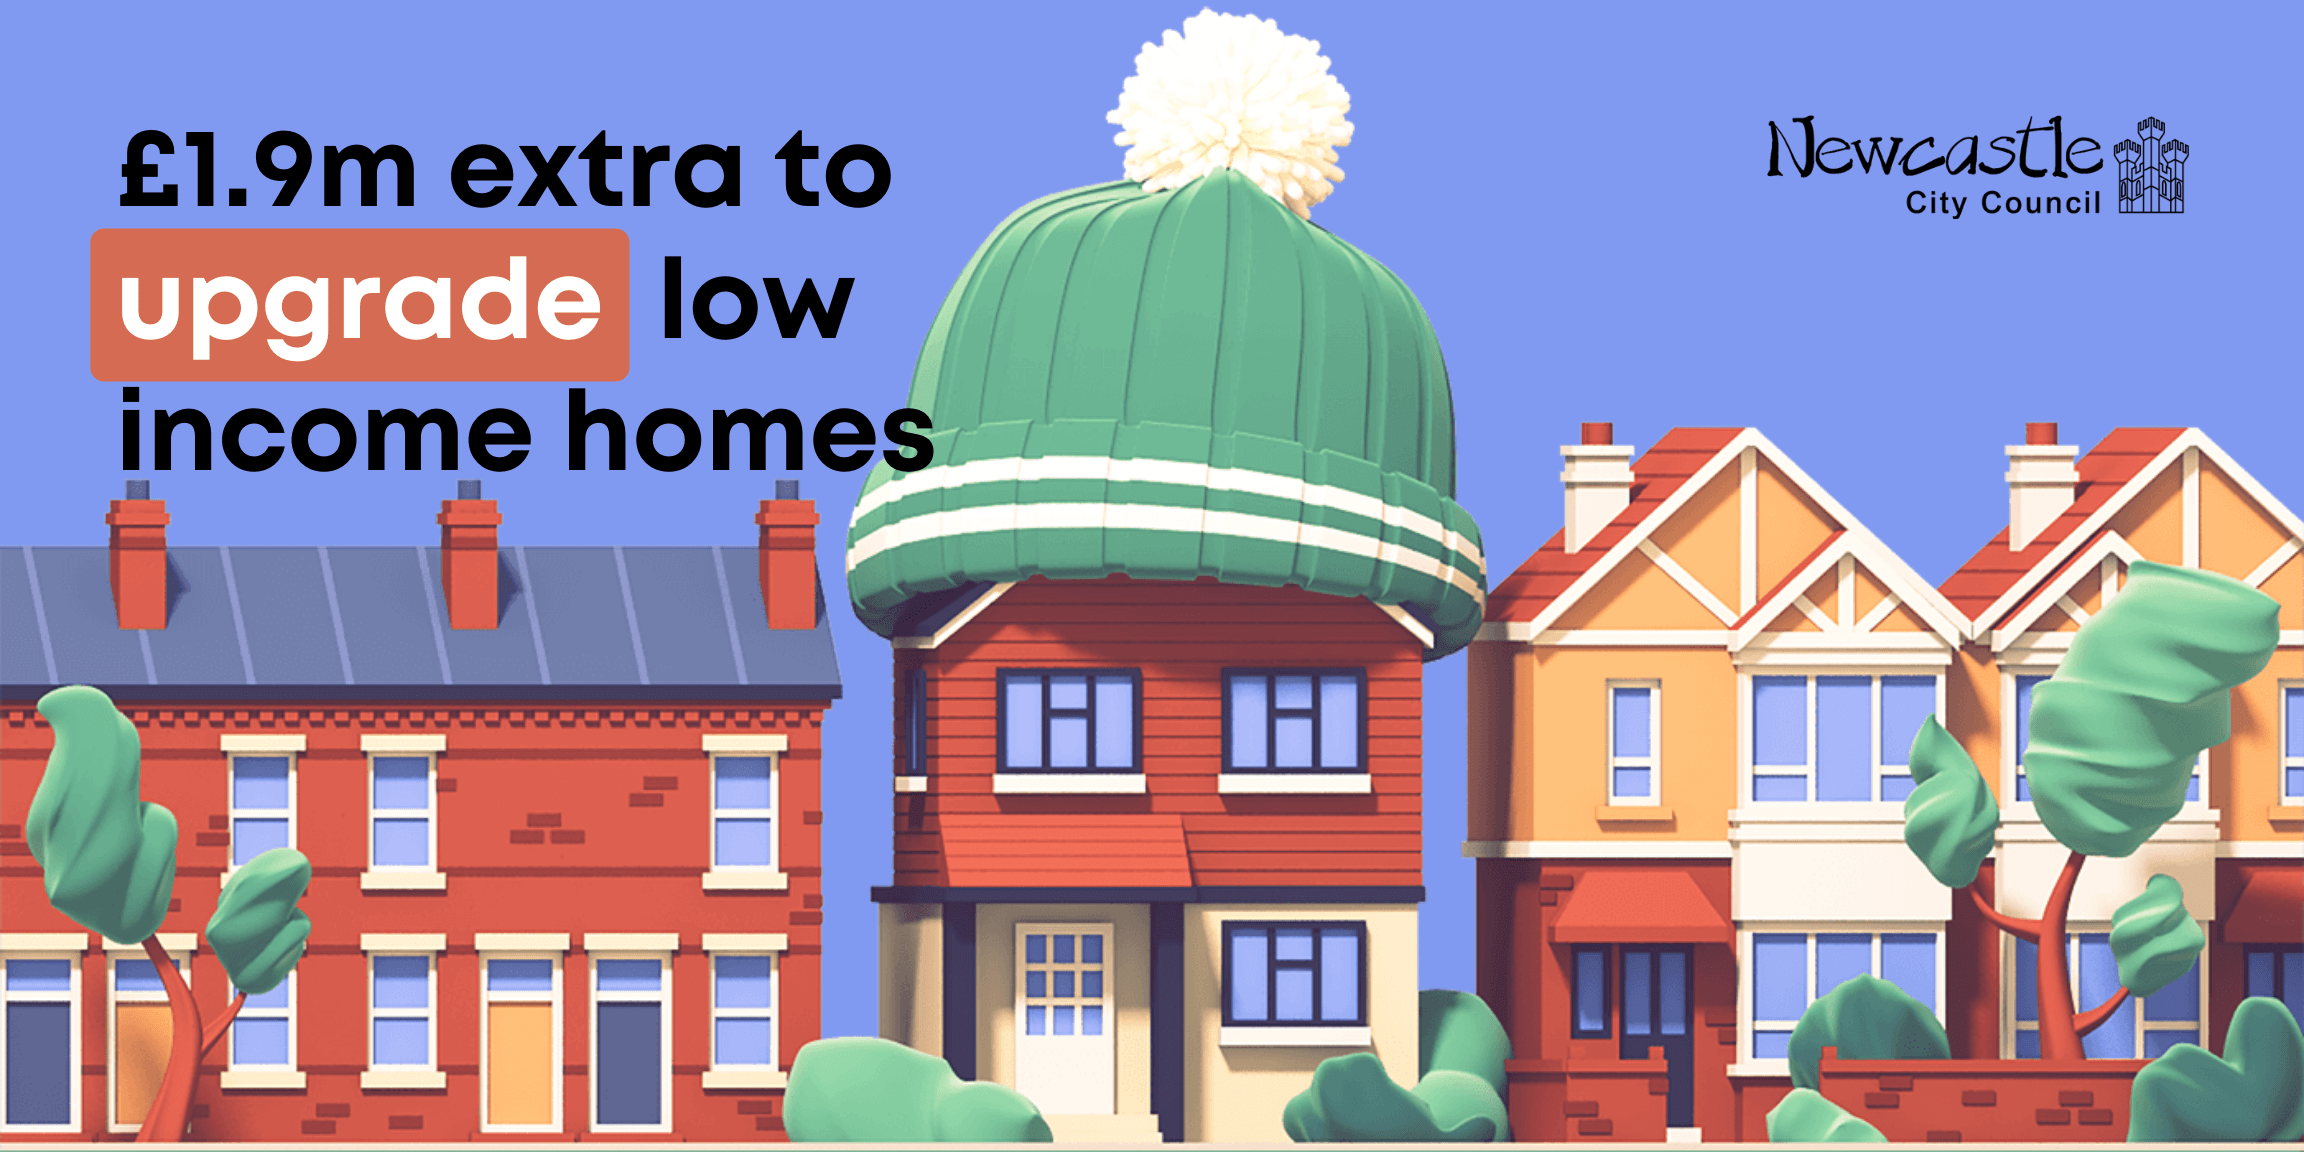 "A cartoon of a house in a woolly hat with the text ""£1.9m extra to upgrade low income homes"""